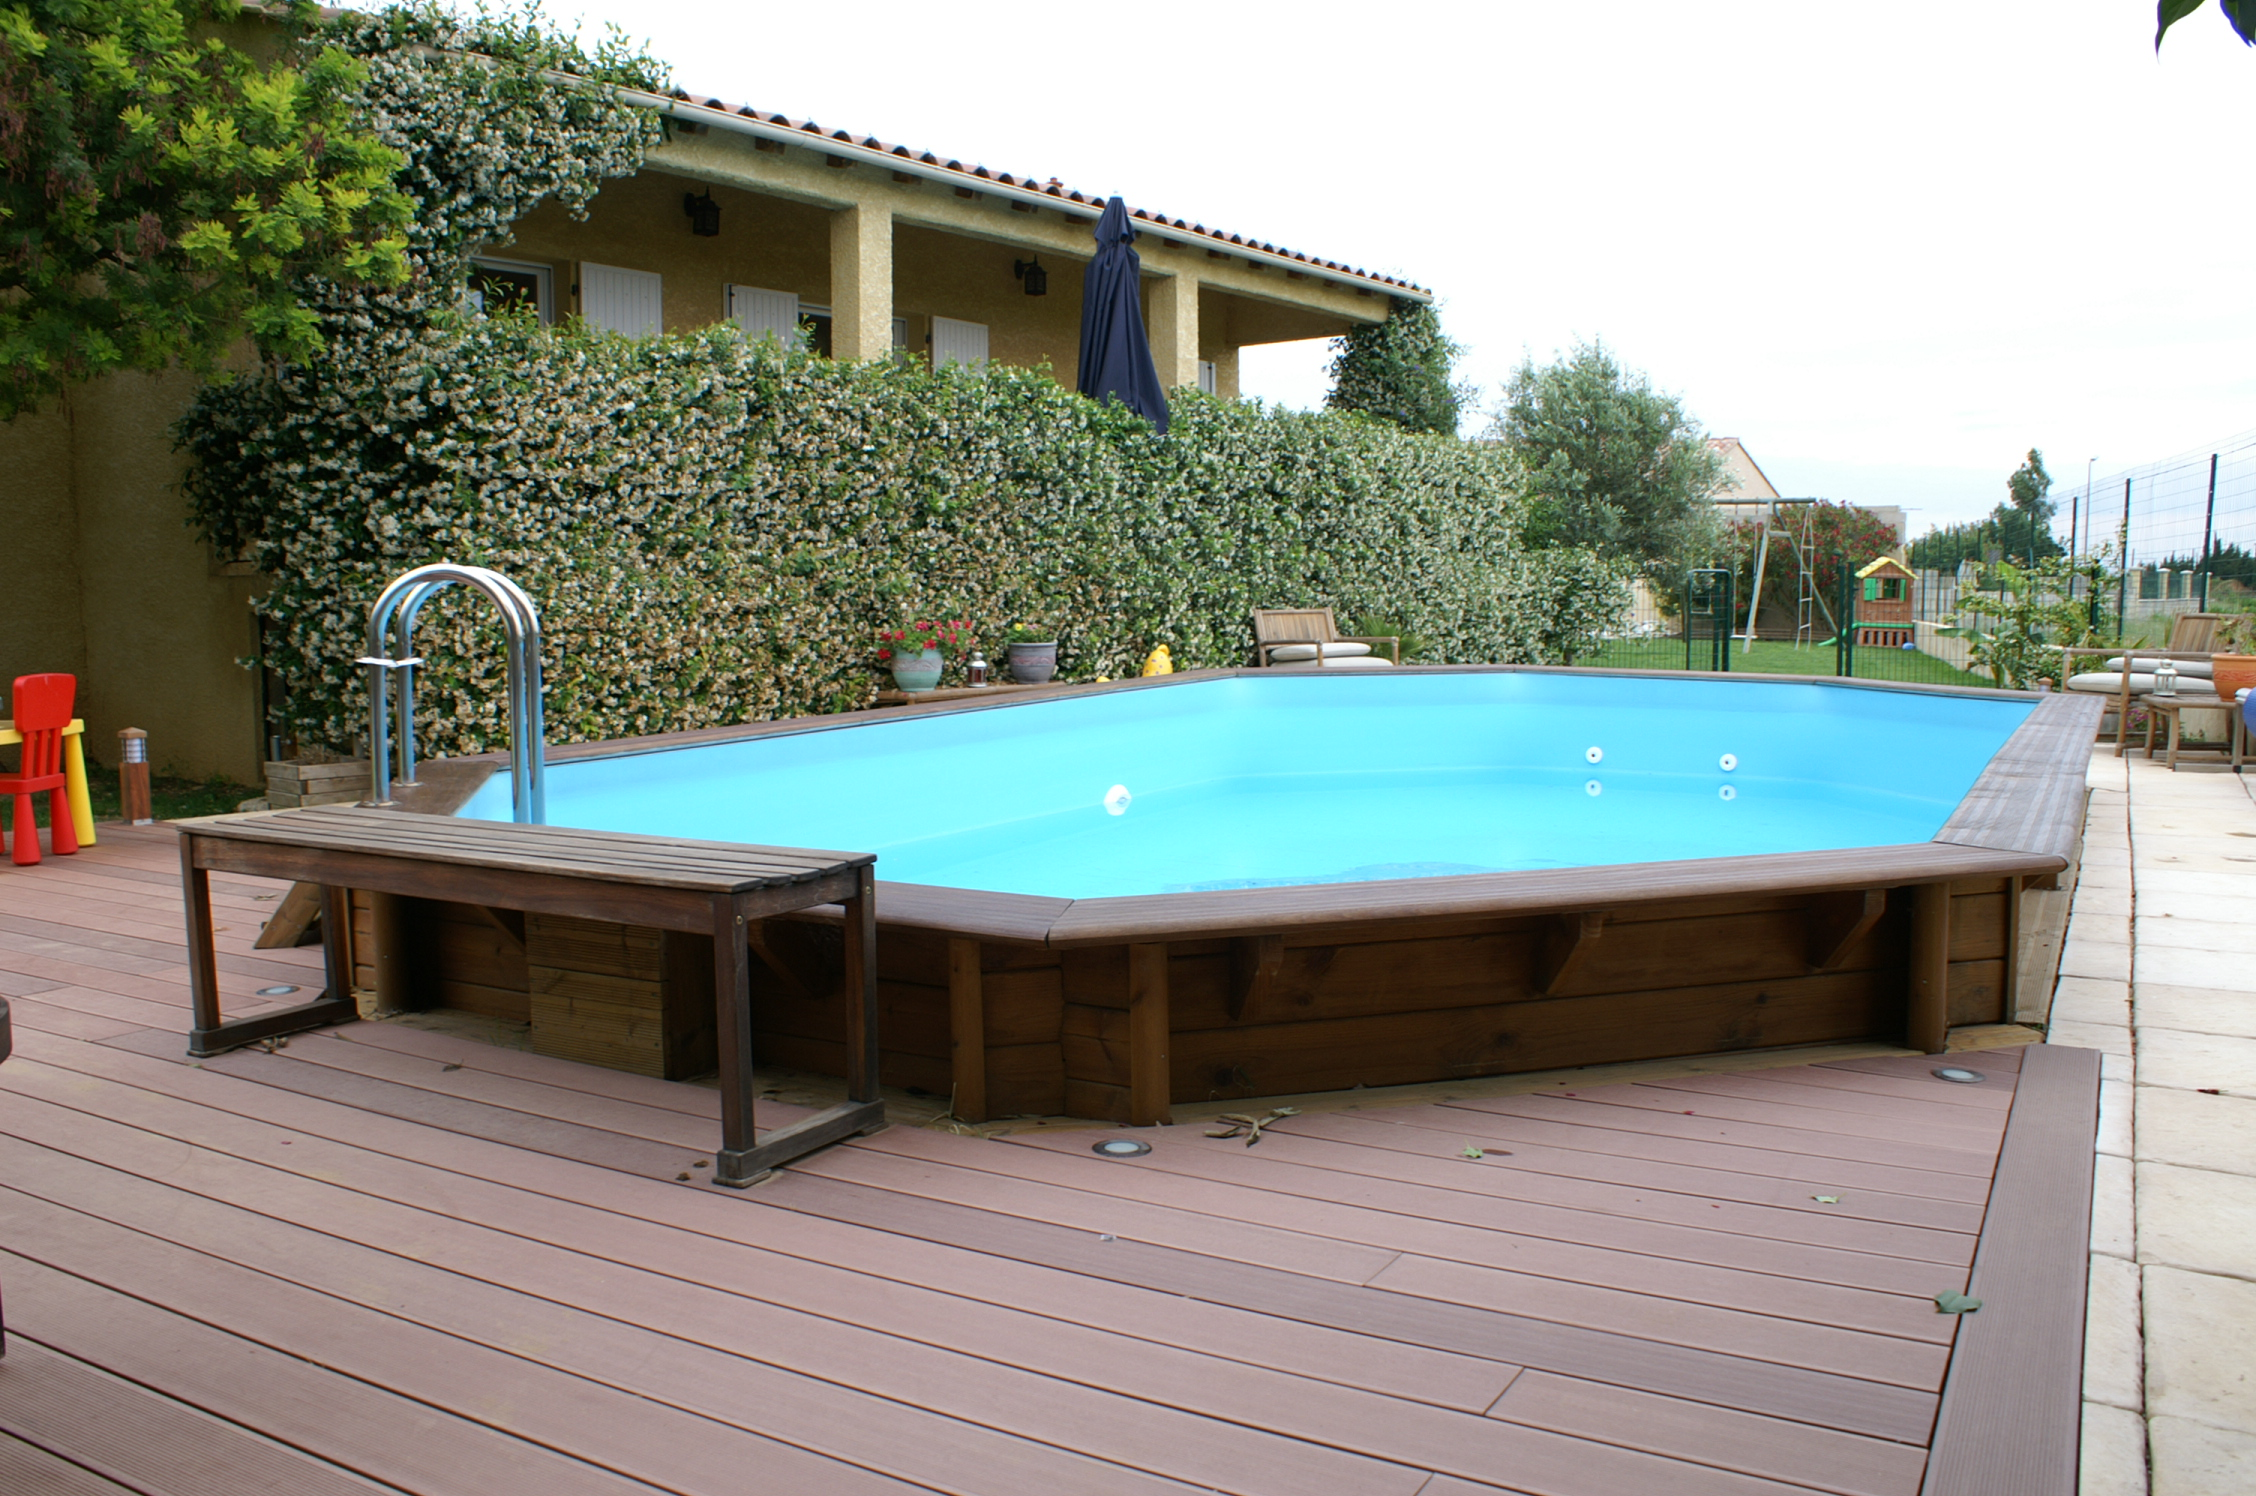 Construction piscines nimes gepad piscines et spa 30000 for Securiser piscine hors sol